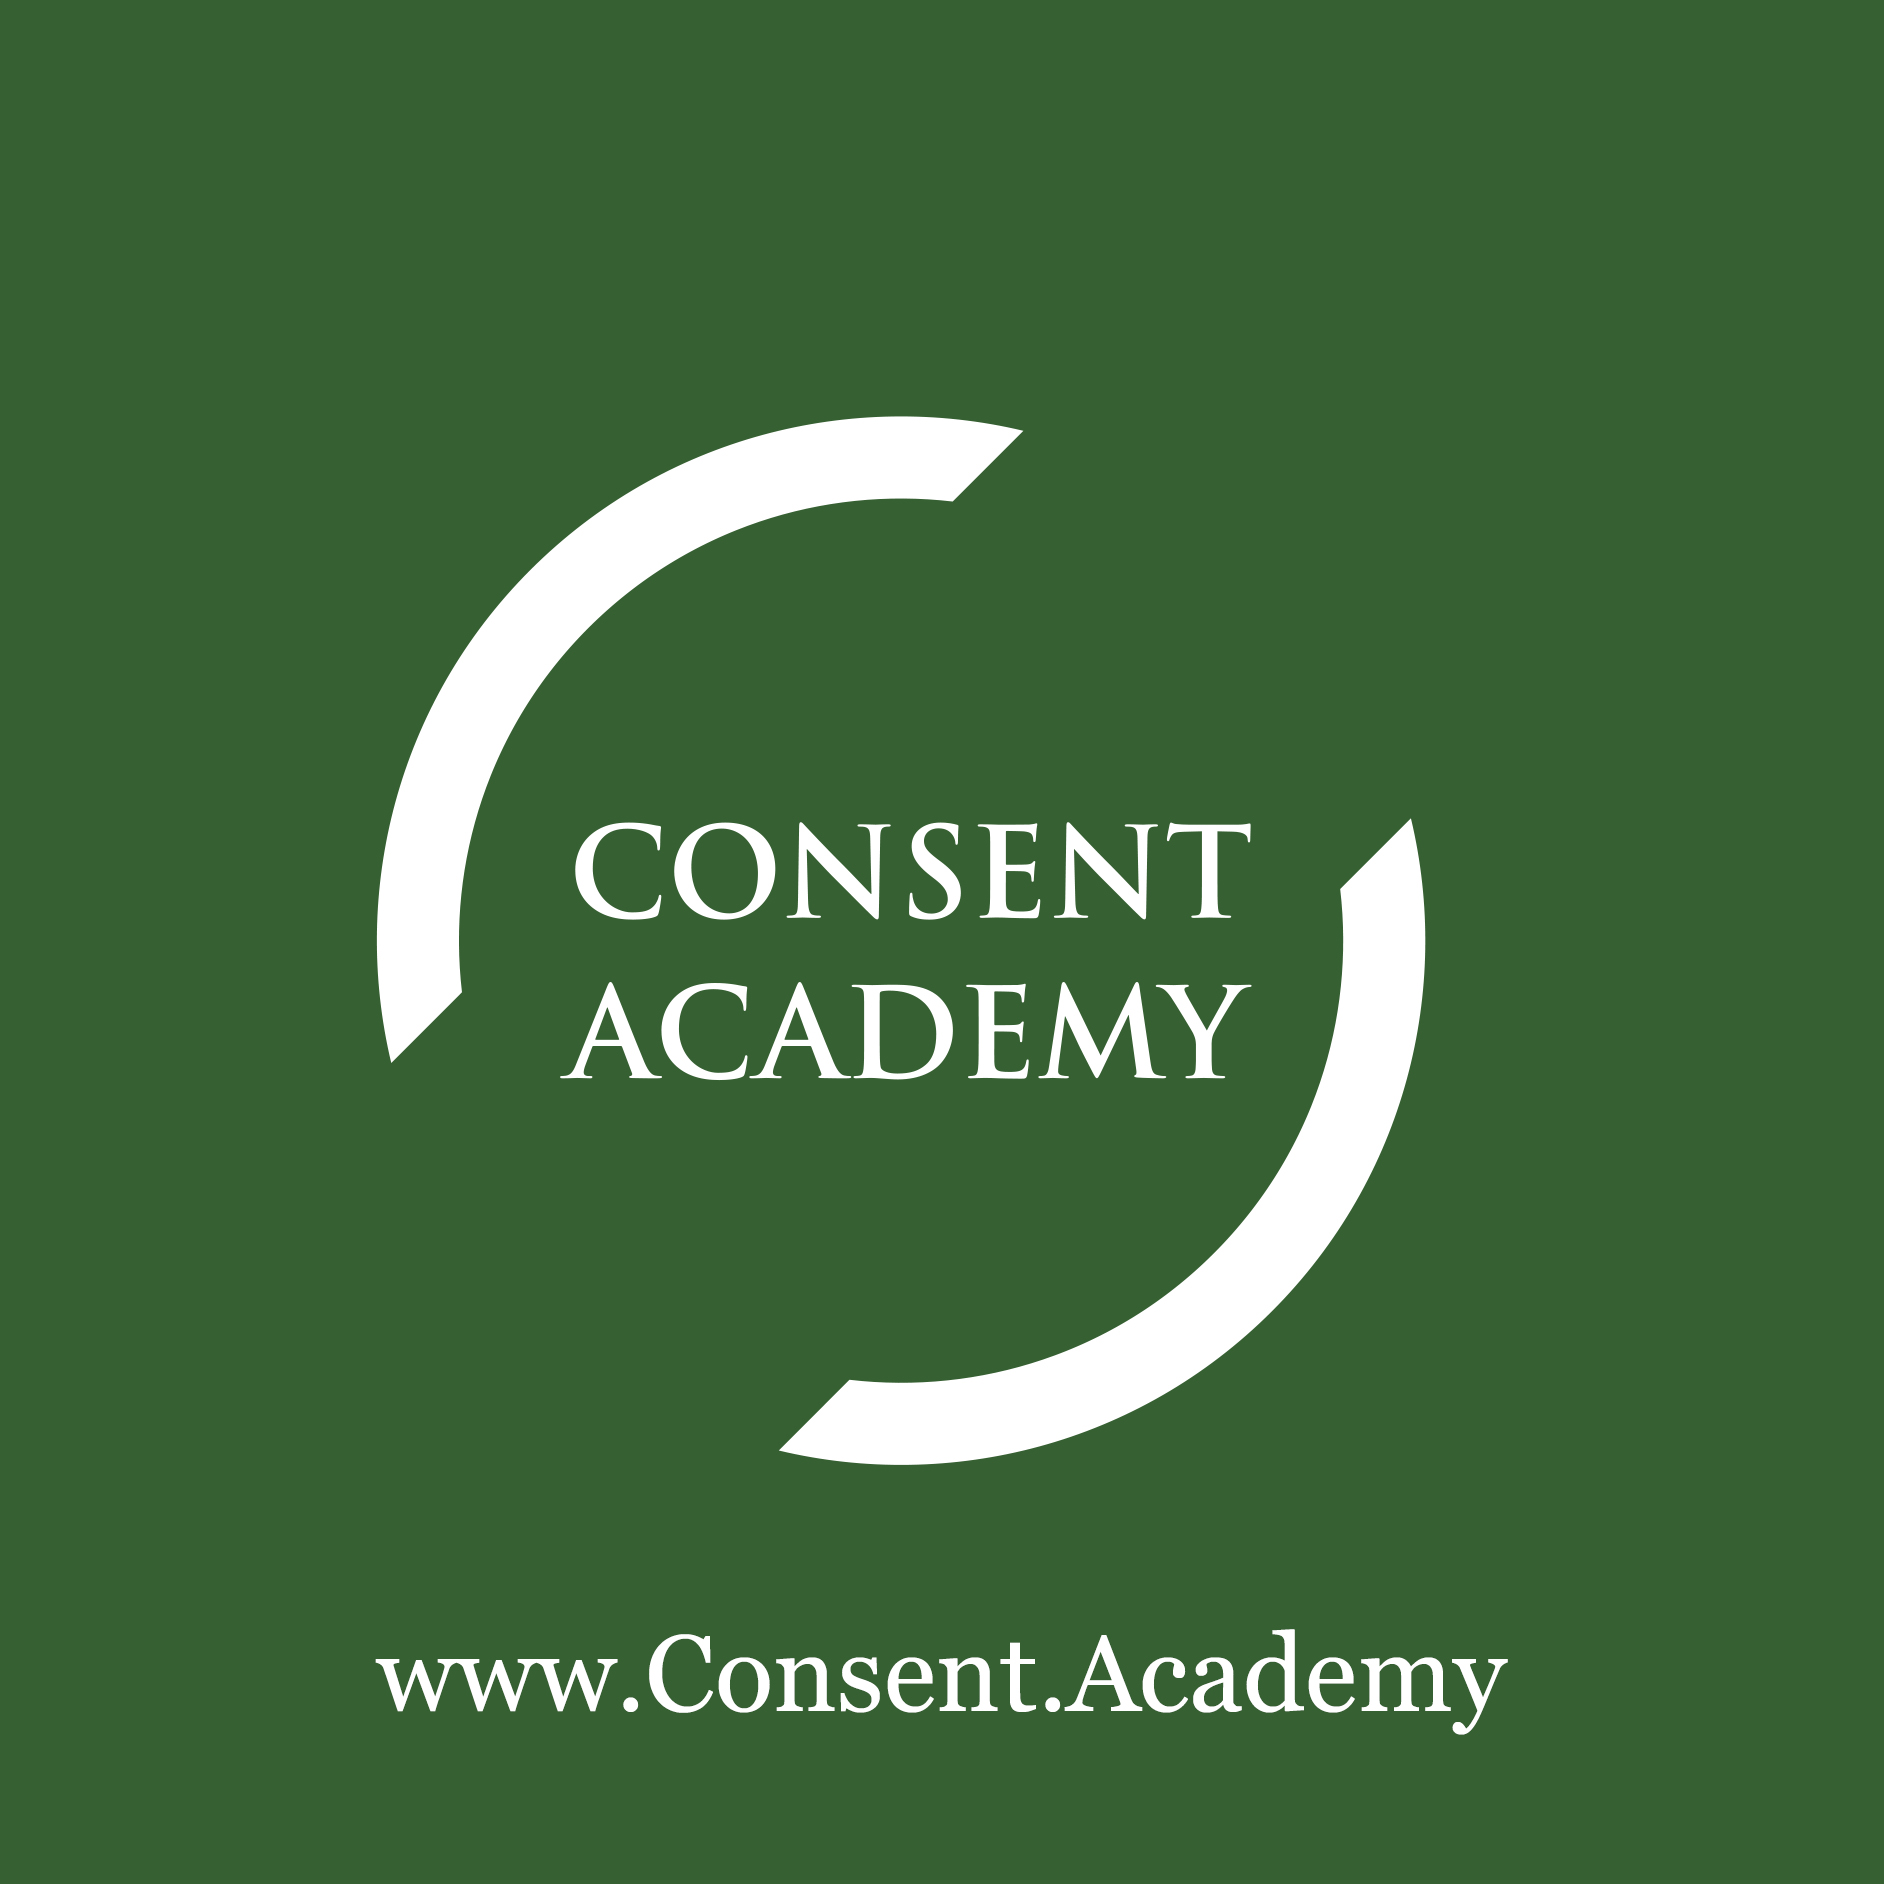 The Consent Academy is an educational collective based out of Seattle, WA. Our mission is to teach consent in all of its complexity, aspects, and potential. With over 50 years of education experience collectively, our approach incorporates disciplines of psychology, sociology, public health, psychotherapy, and personal coaching to create a systemic view of how consent impacts everyone from the bedroom to the boardroom. We believe consent is part of everyday life and its practice builds stronger, safer, and more connected communities.